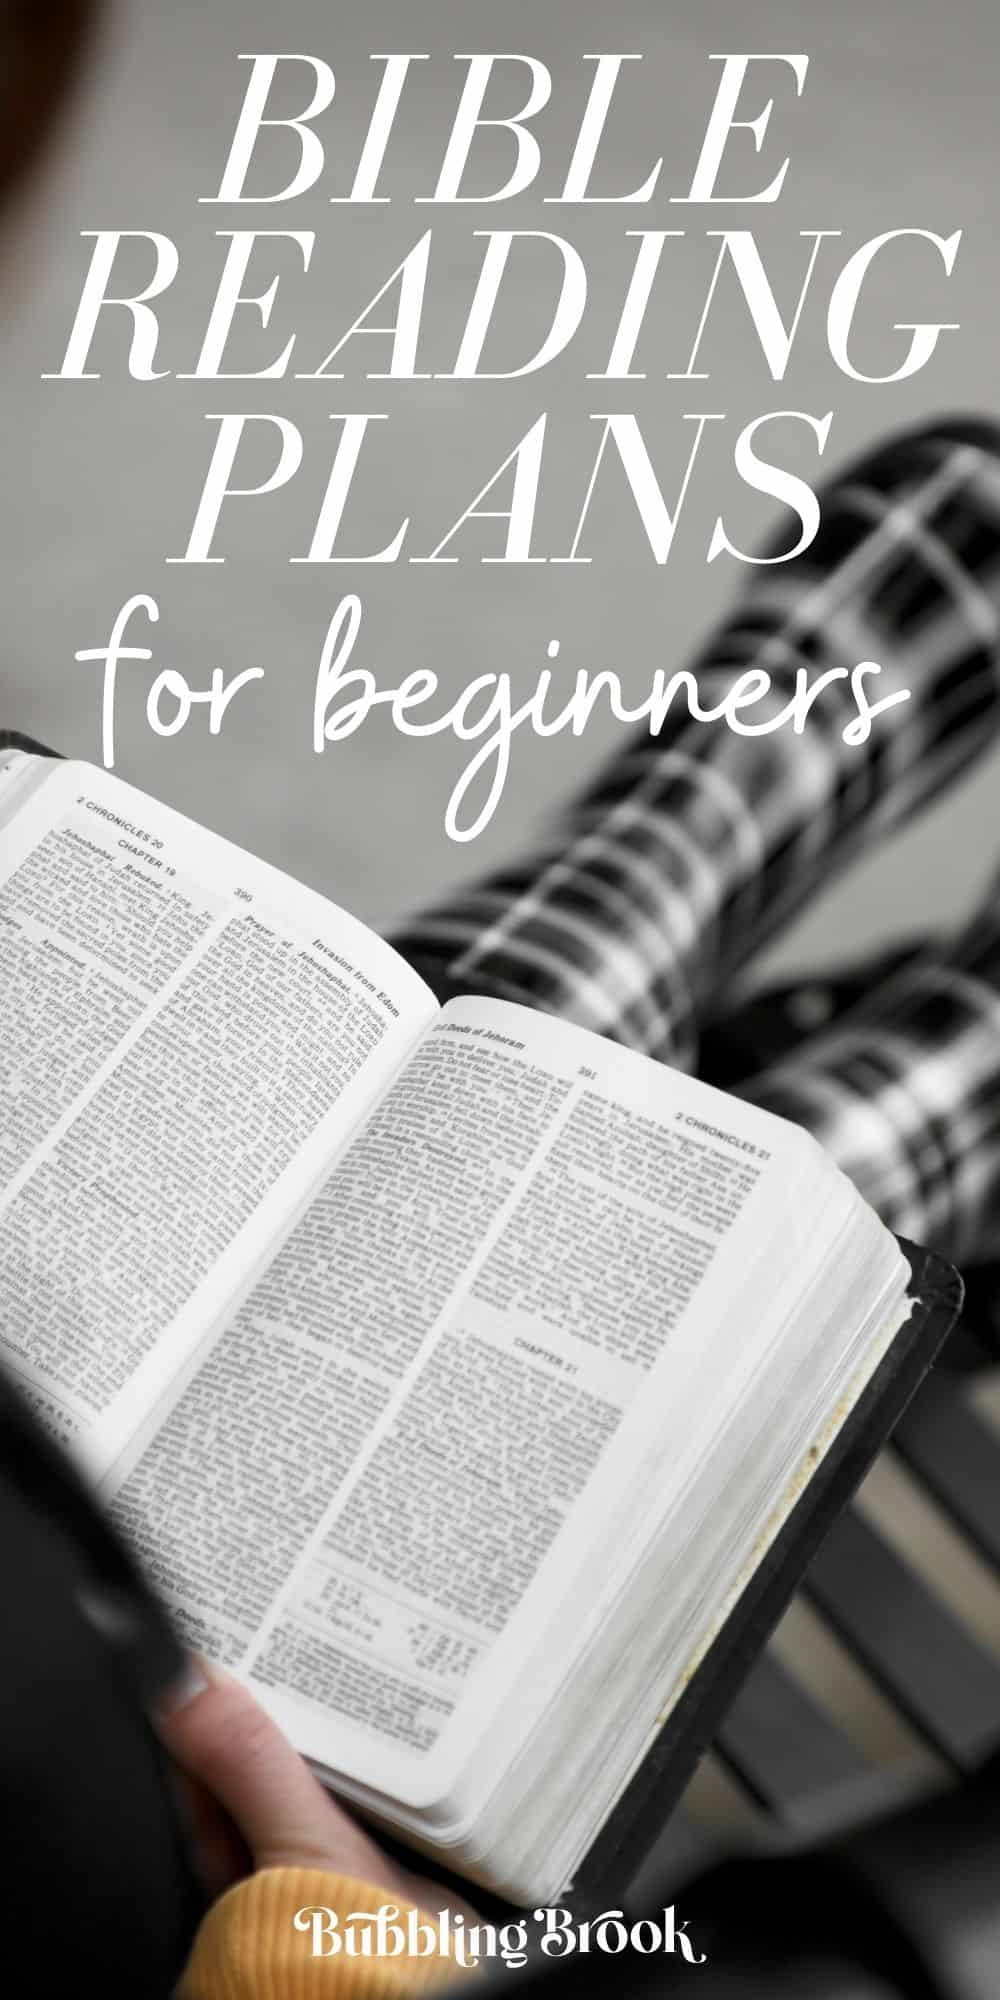 Bible reading plans for beginners - pin for Pinterest